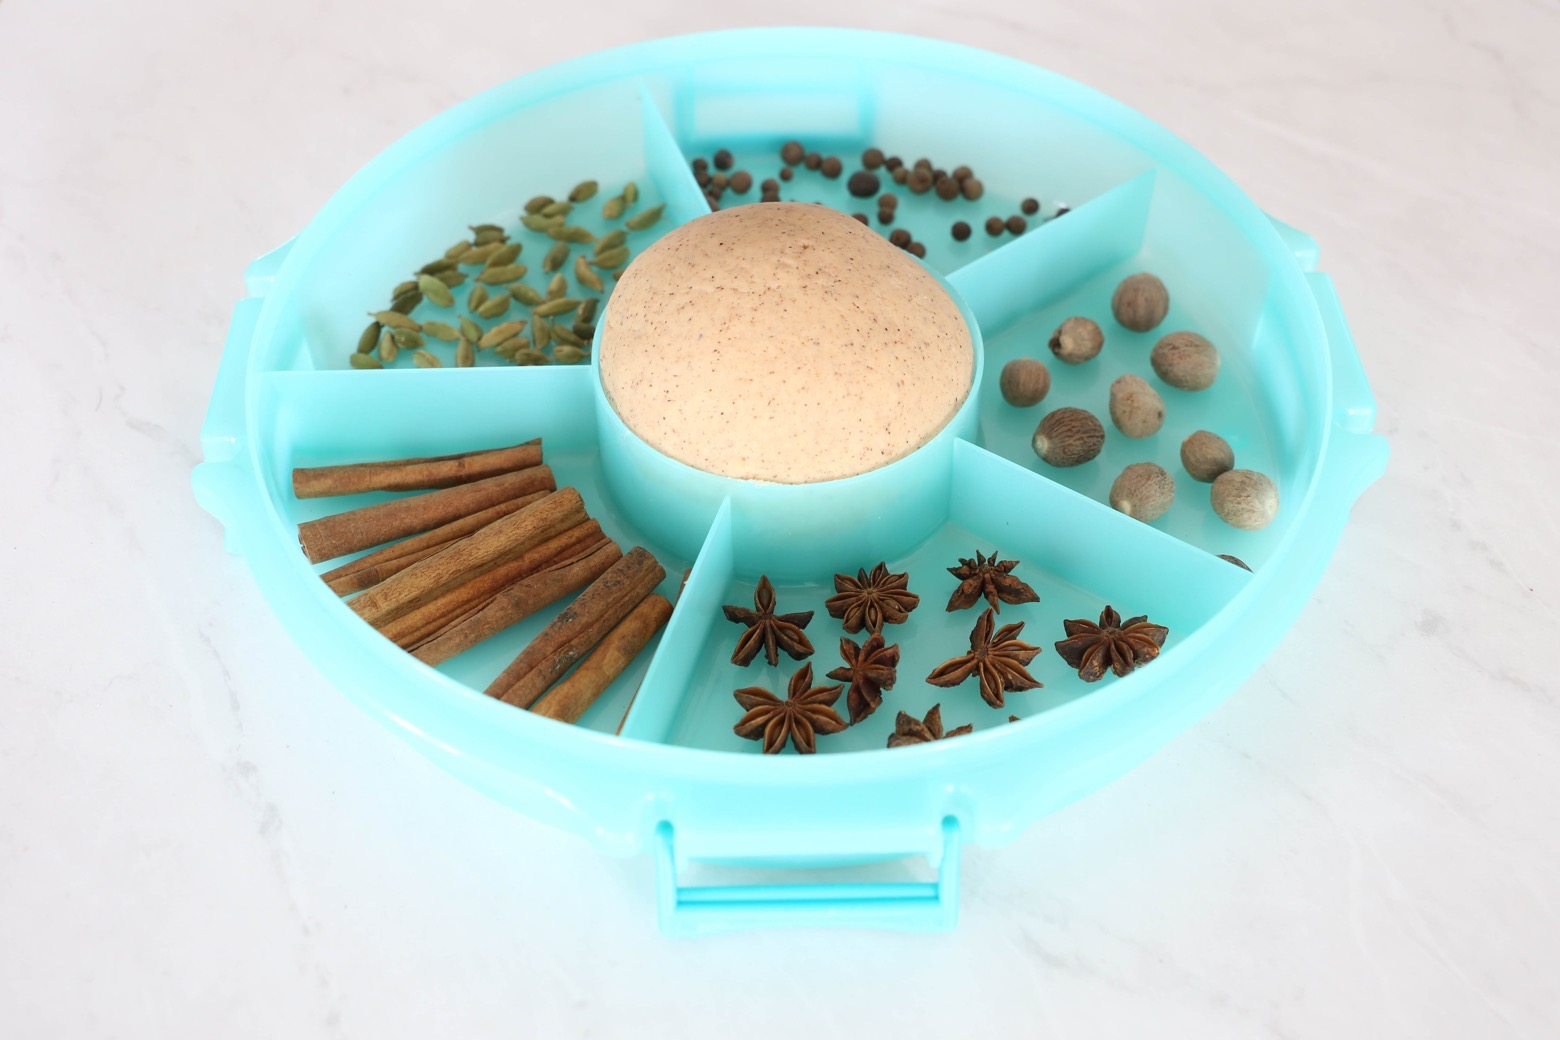 Autumn Spice Play Dough with Whole Spices